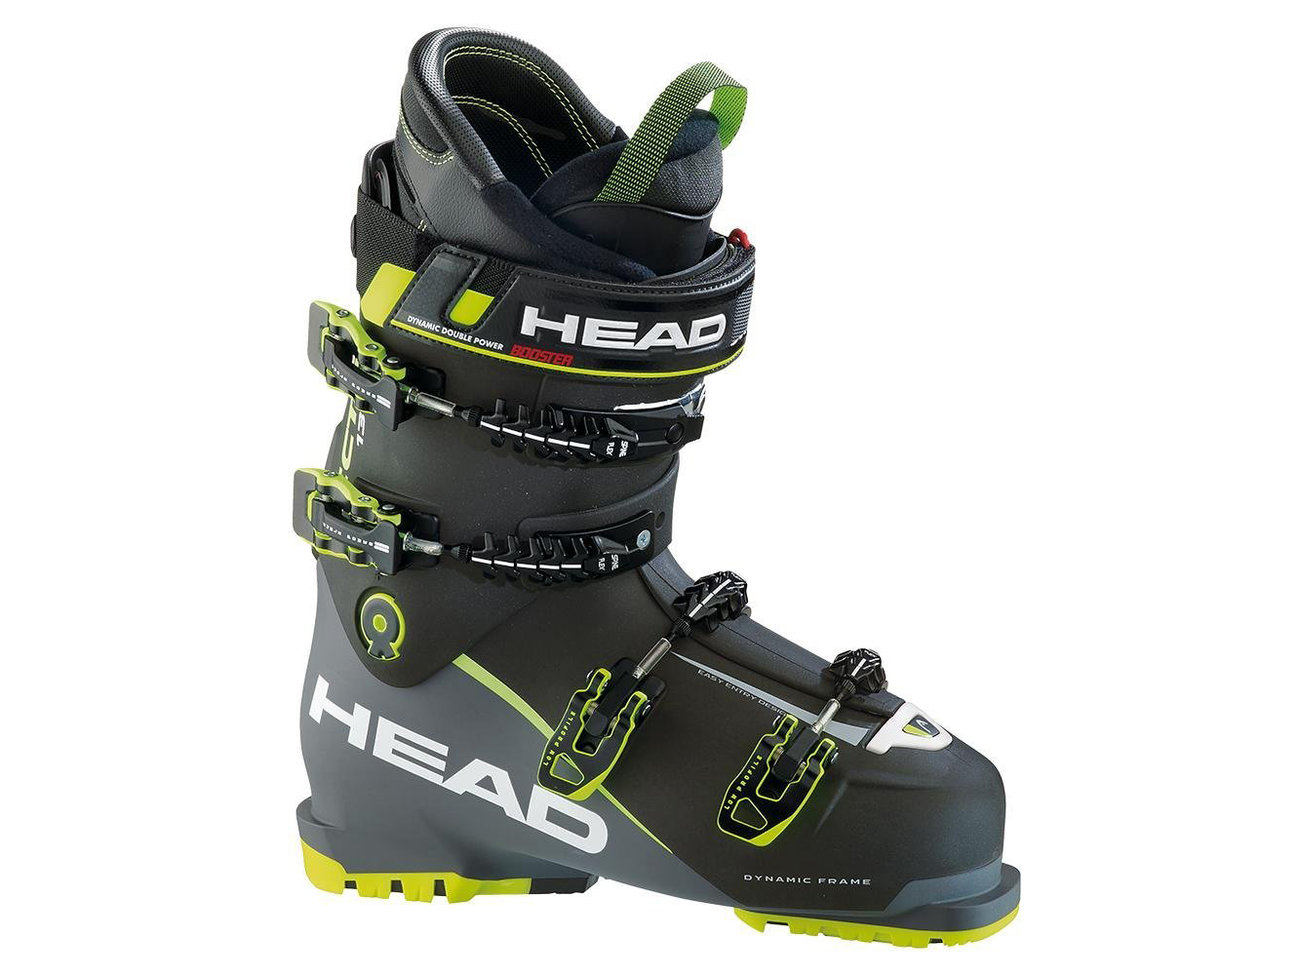 head-boots-SKIING0816.jpg